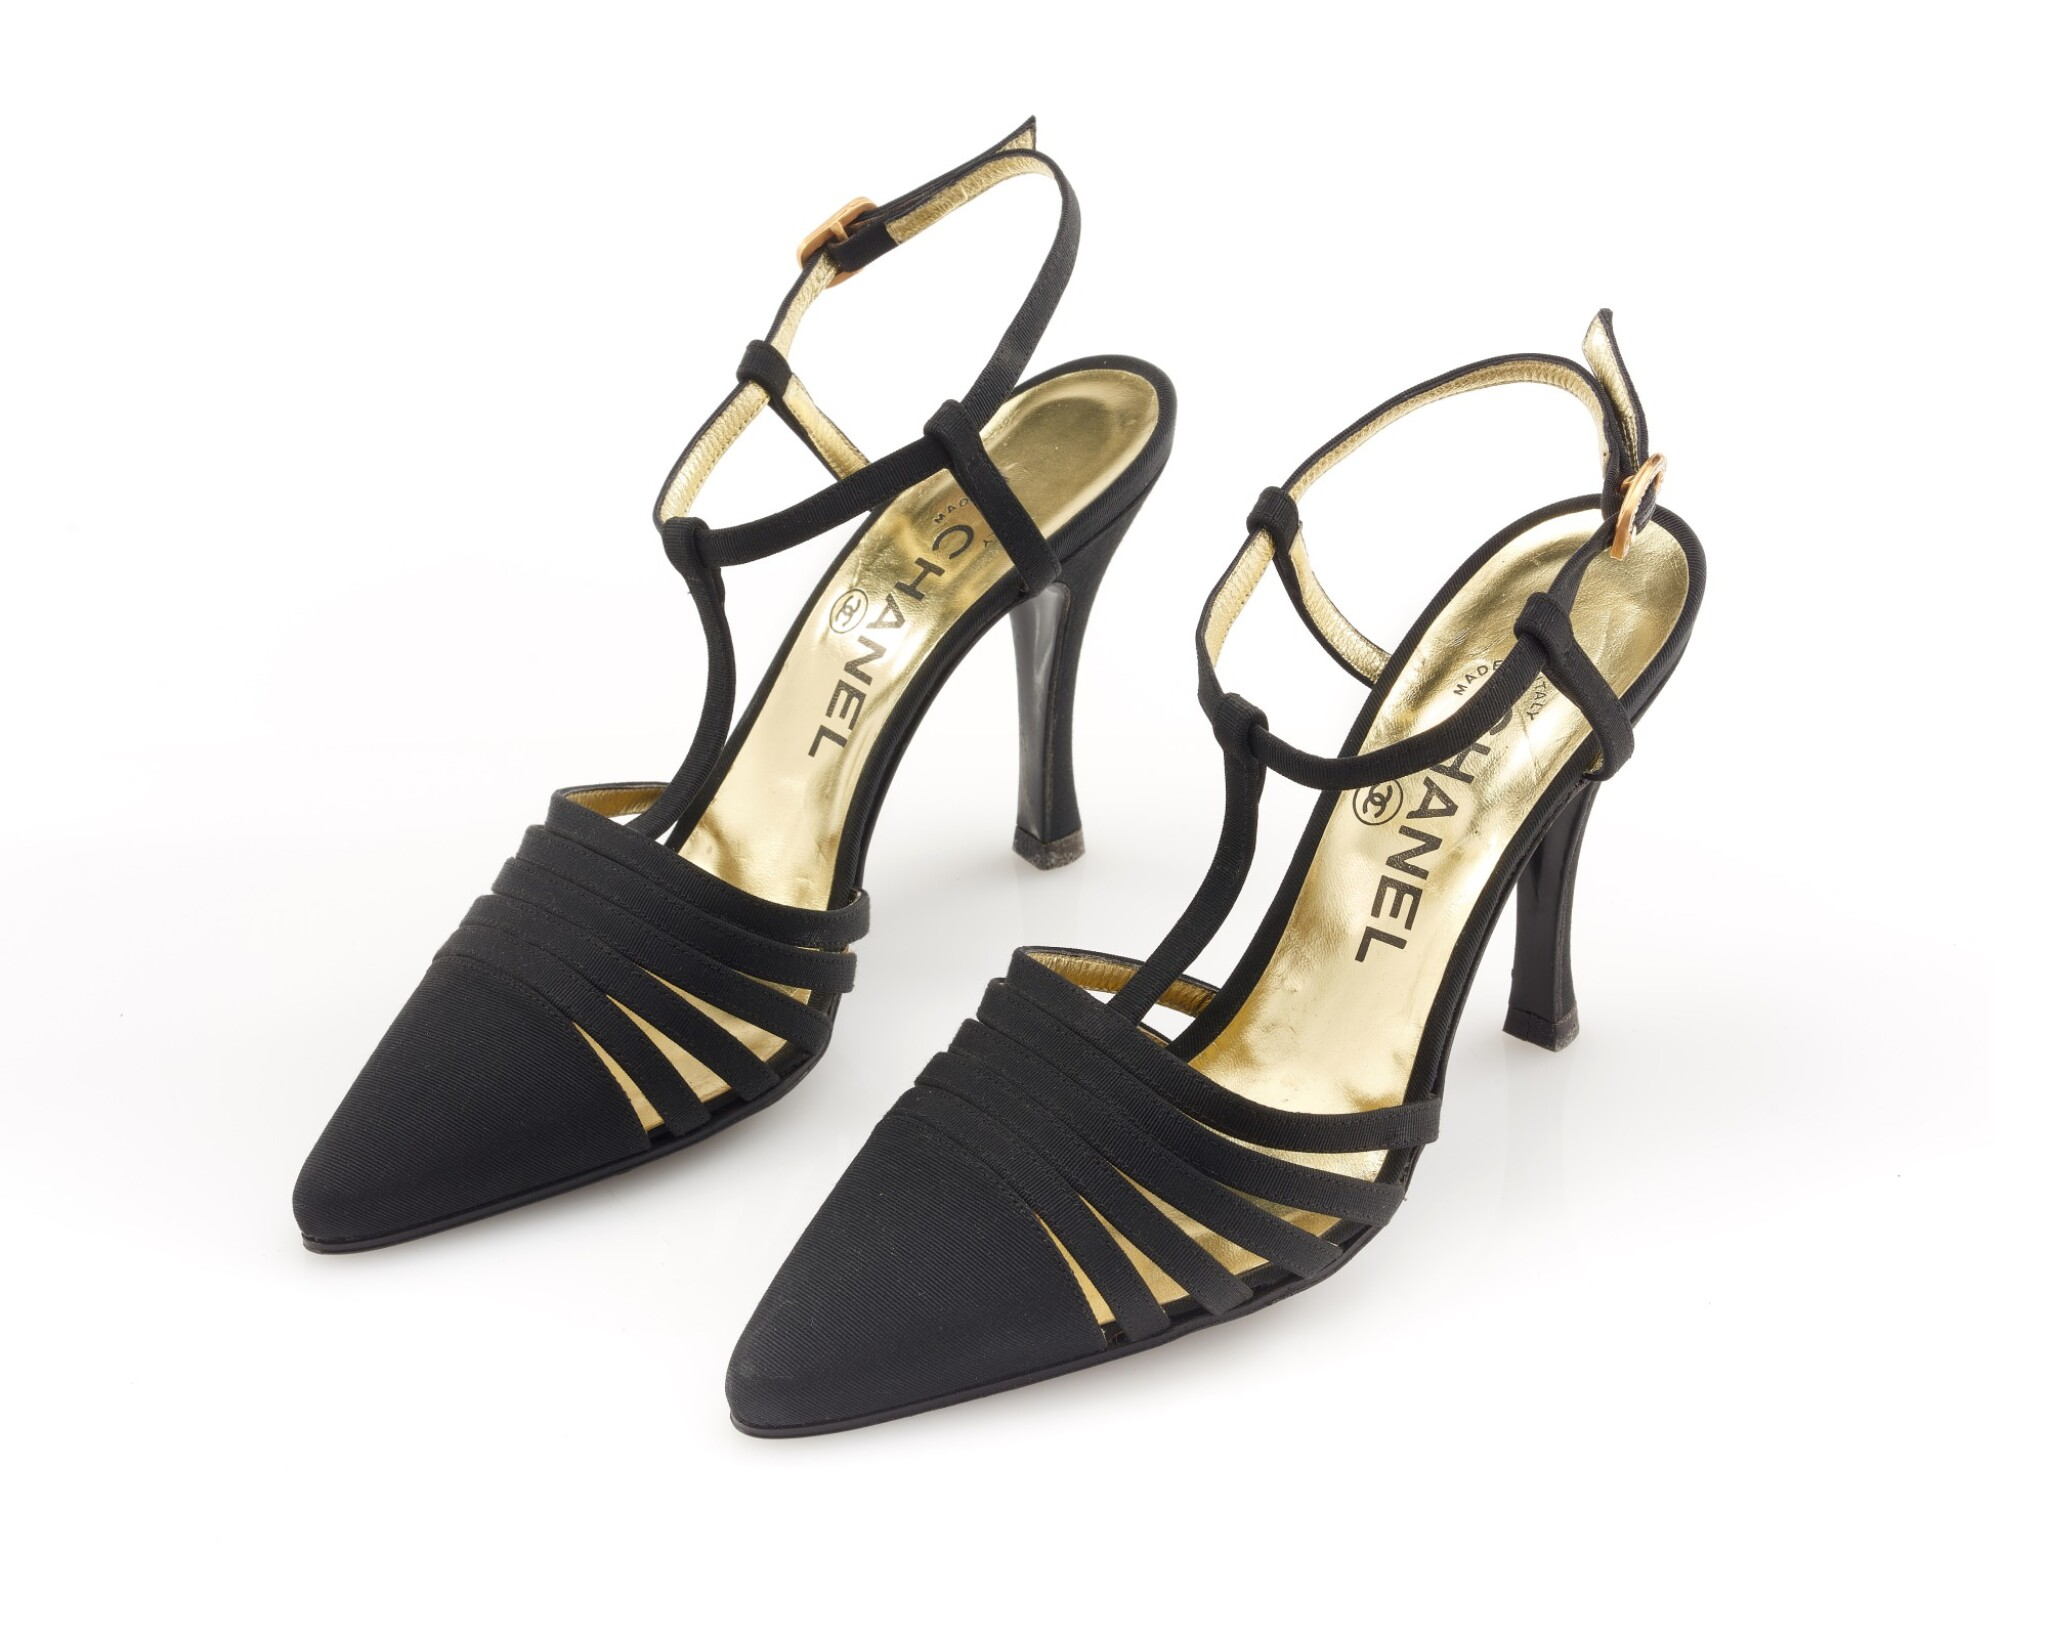 Pair of black grosgrain t-strap pumps